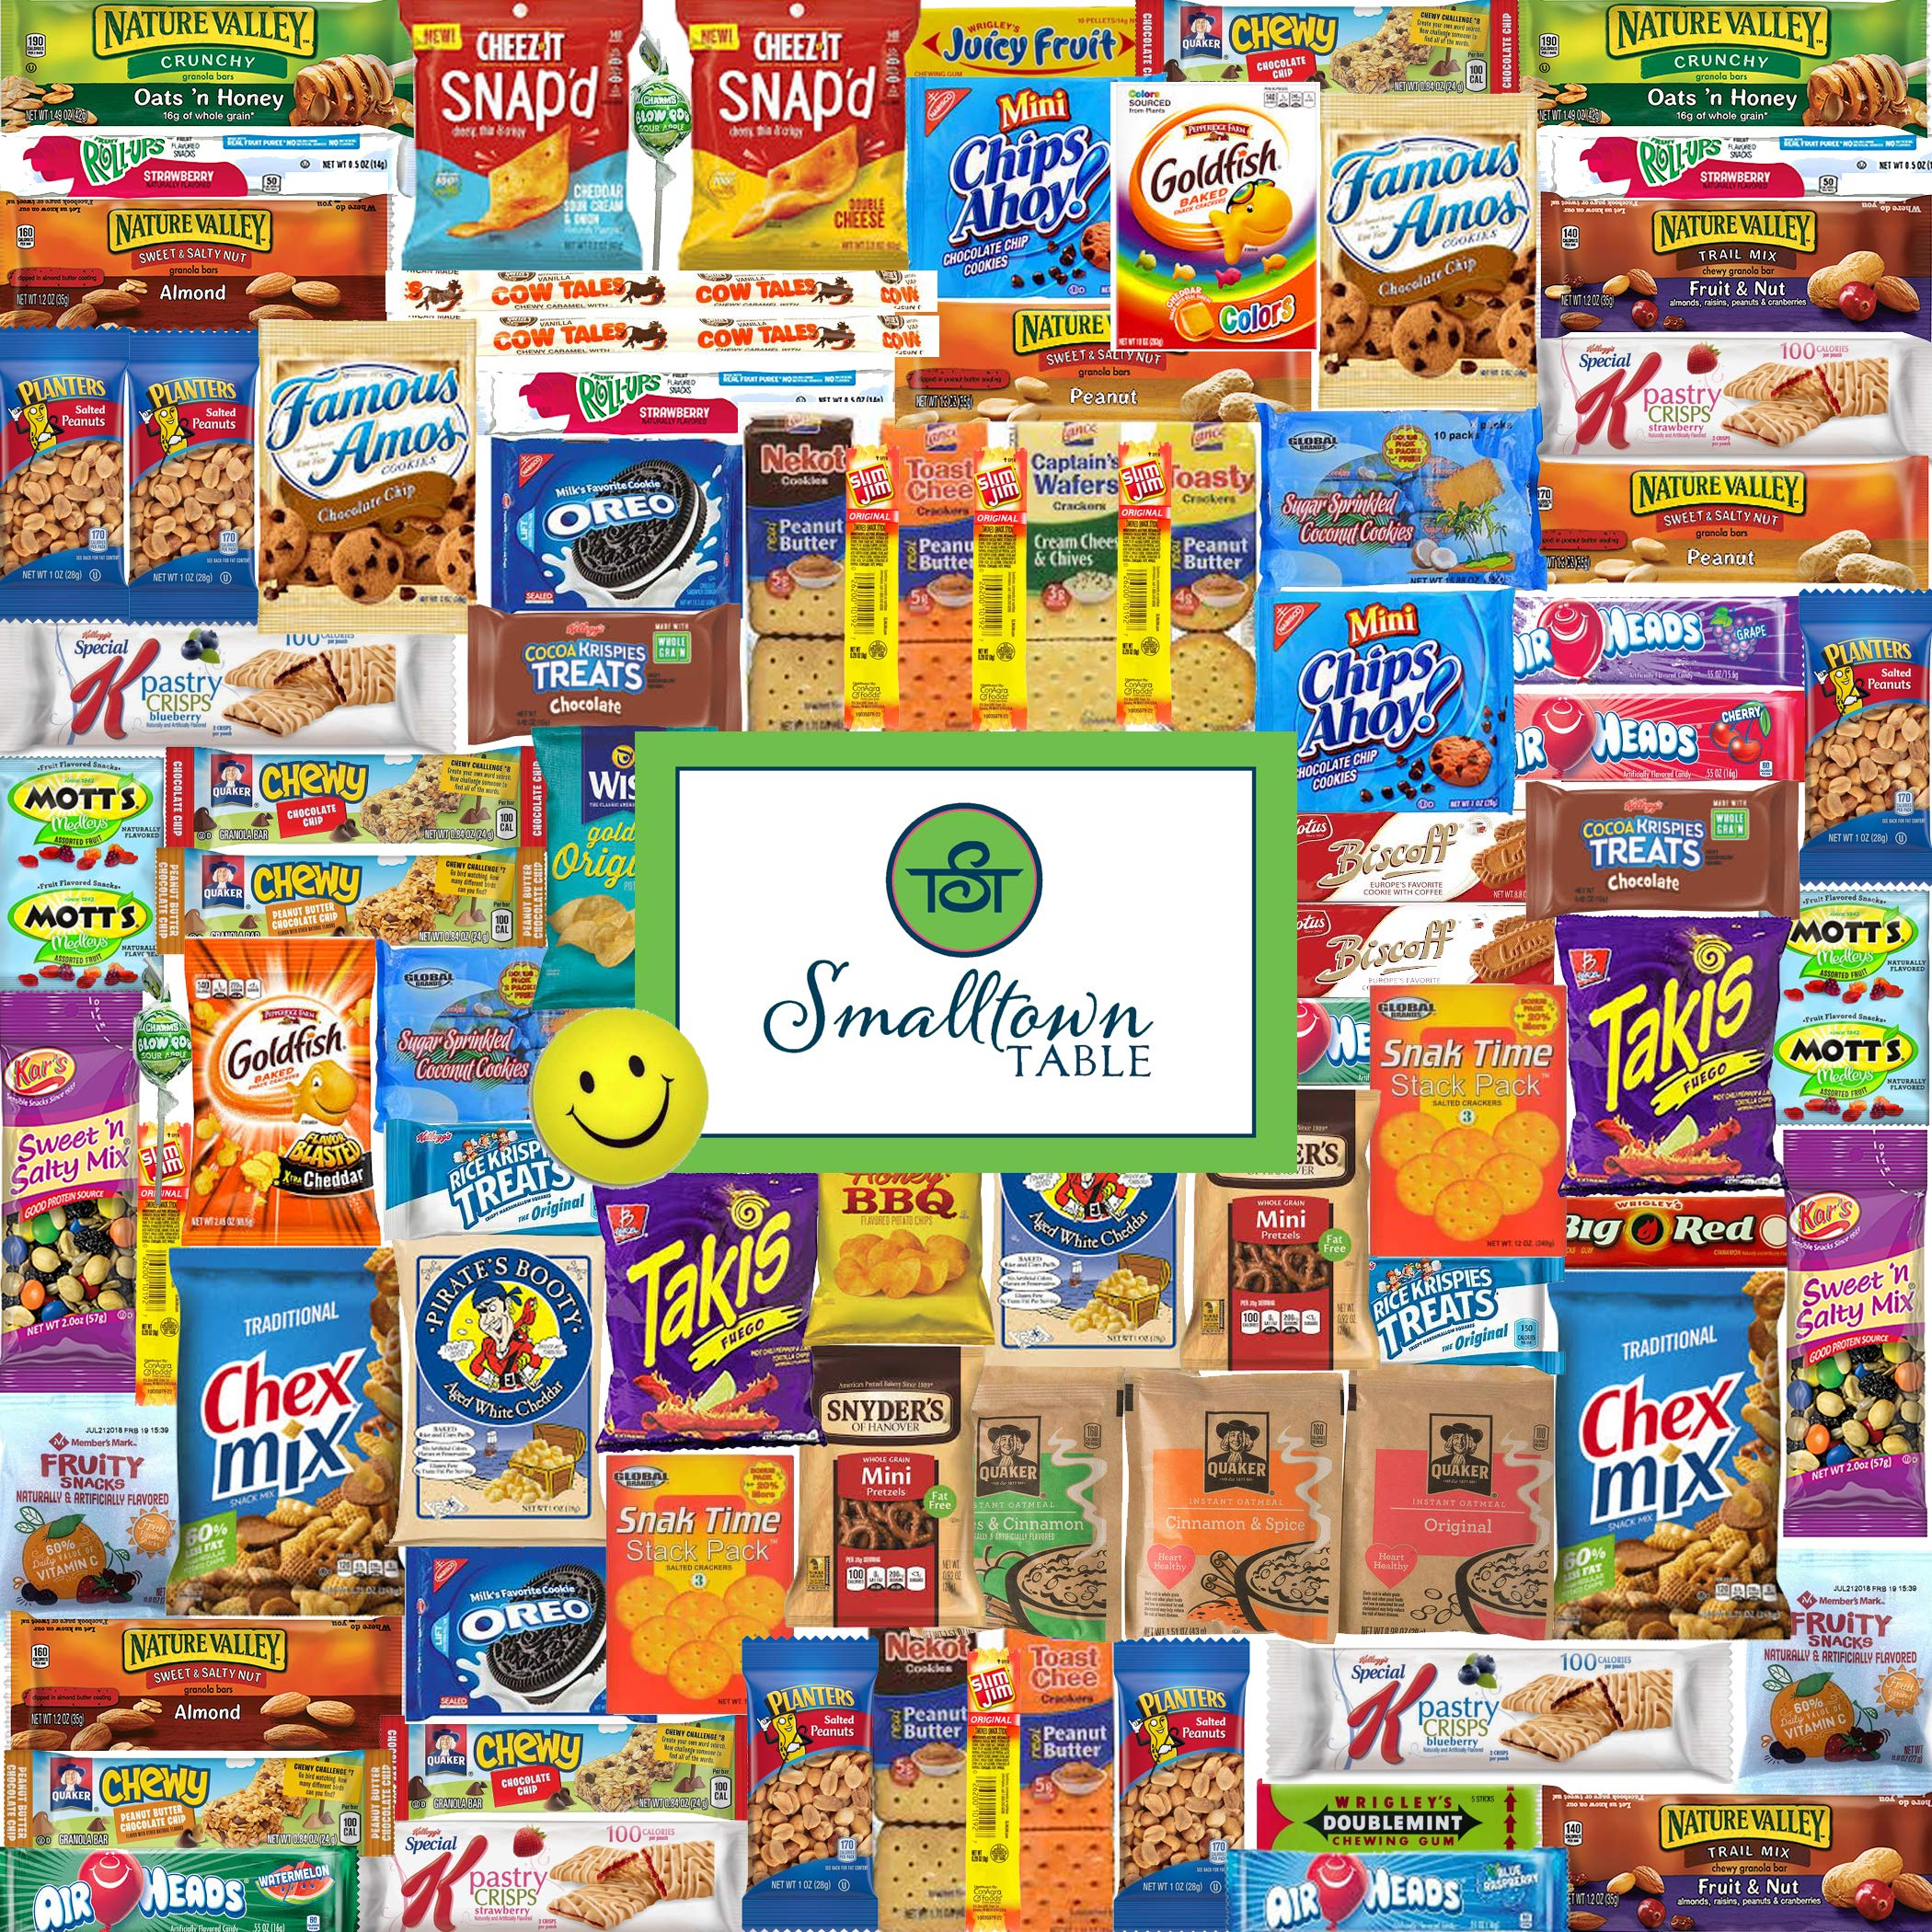 Premium Snacks Variety Pack Care Package - Huge 100 Count - the Perfect Gift Box for Office, College Students, Camp, Military - Individually Wrapped Chips, Cookies, Candy, More by SmallTown Table (Image #1)